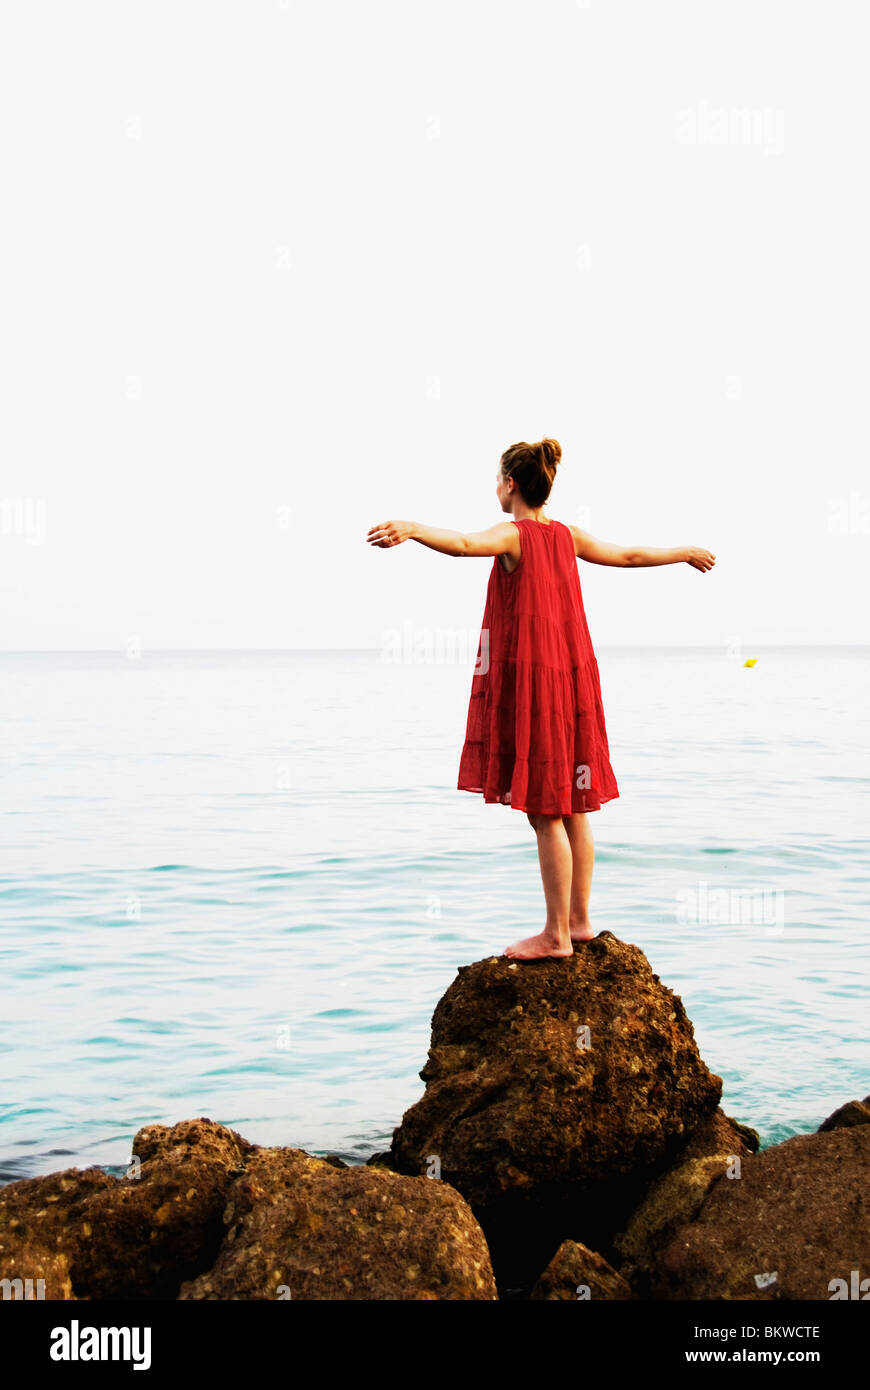 Woman in red dress - Stock Image